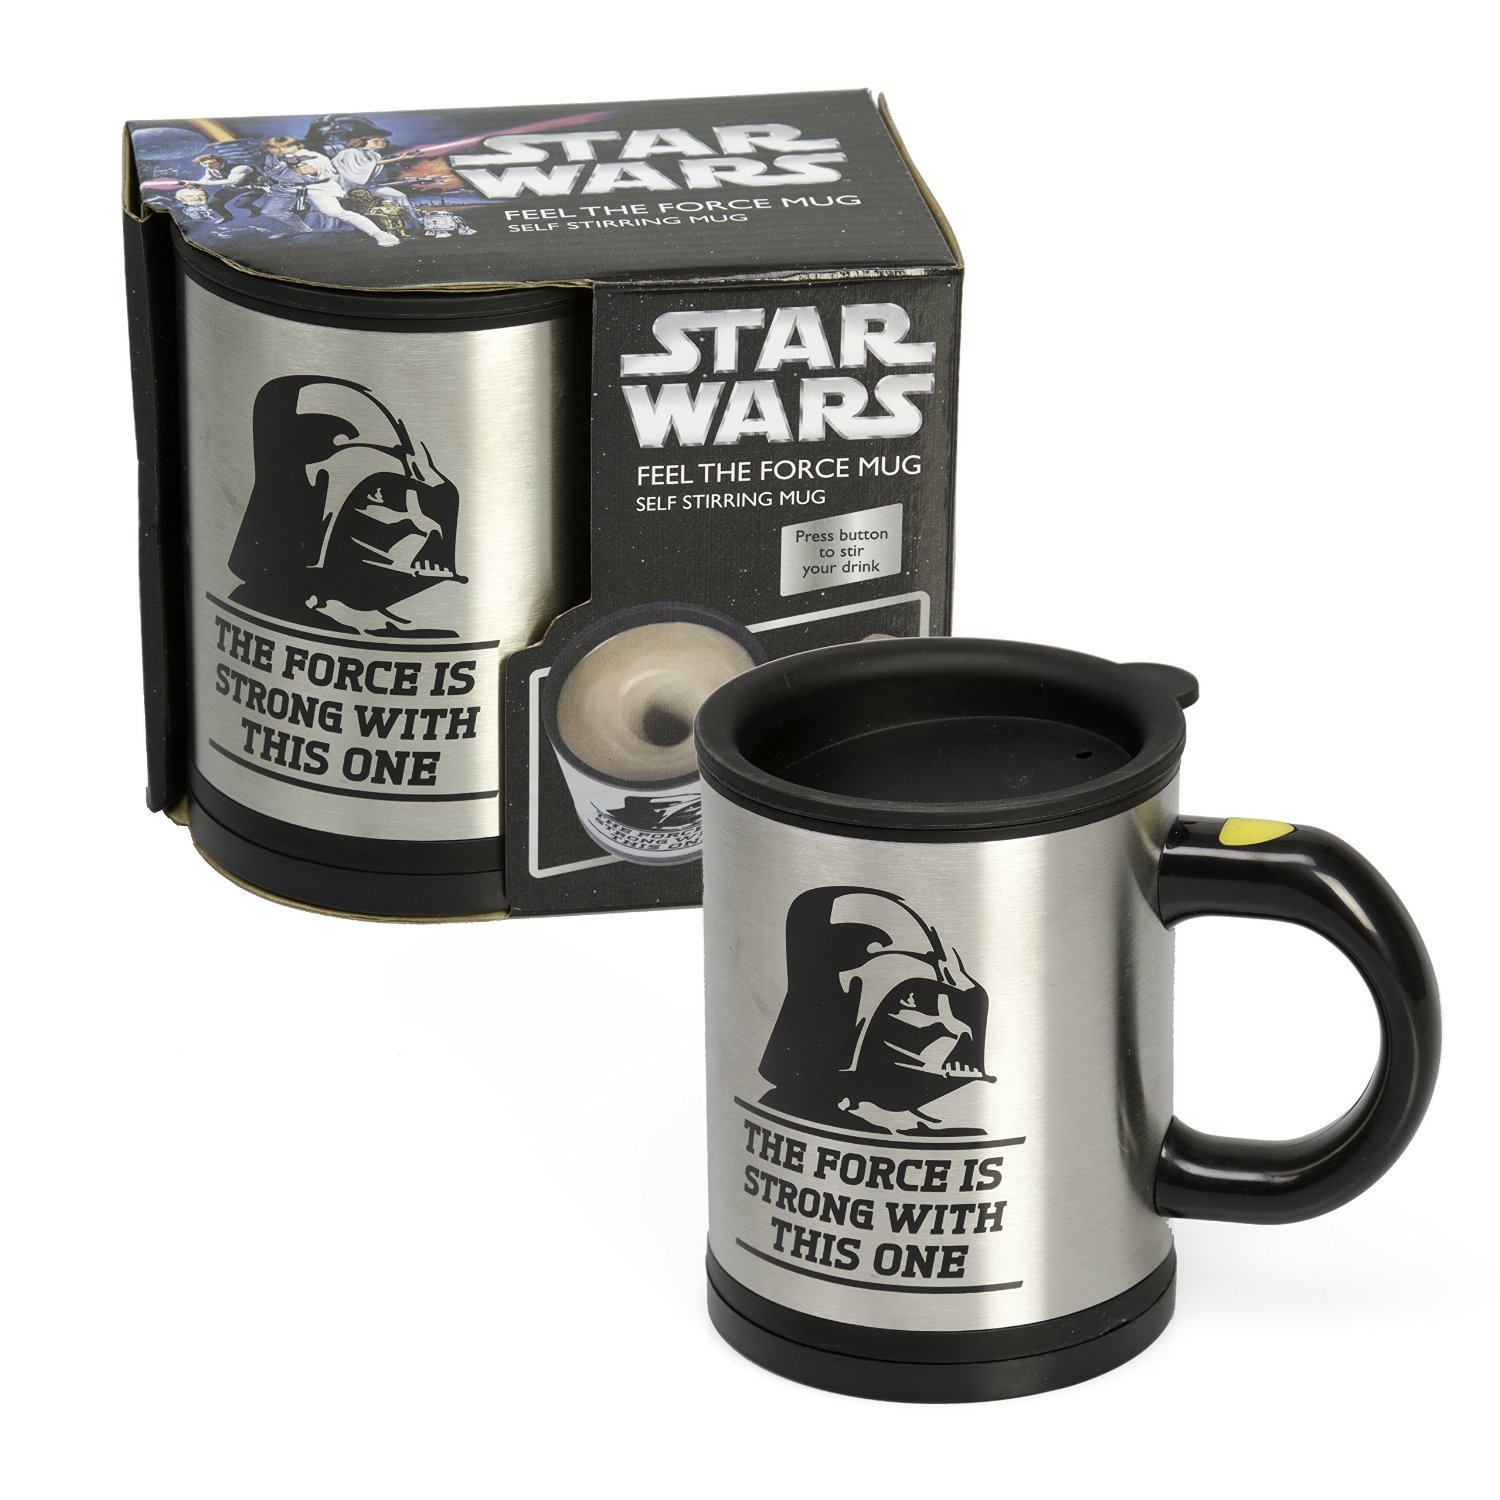 Star Wars Darth Vader 12 oz. Stainless Steel Self Stirring Travel Mug - Mix Your Drink with the Force Artist Not Provided Everready First Aid UGTSW35747 Miscellaneous